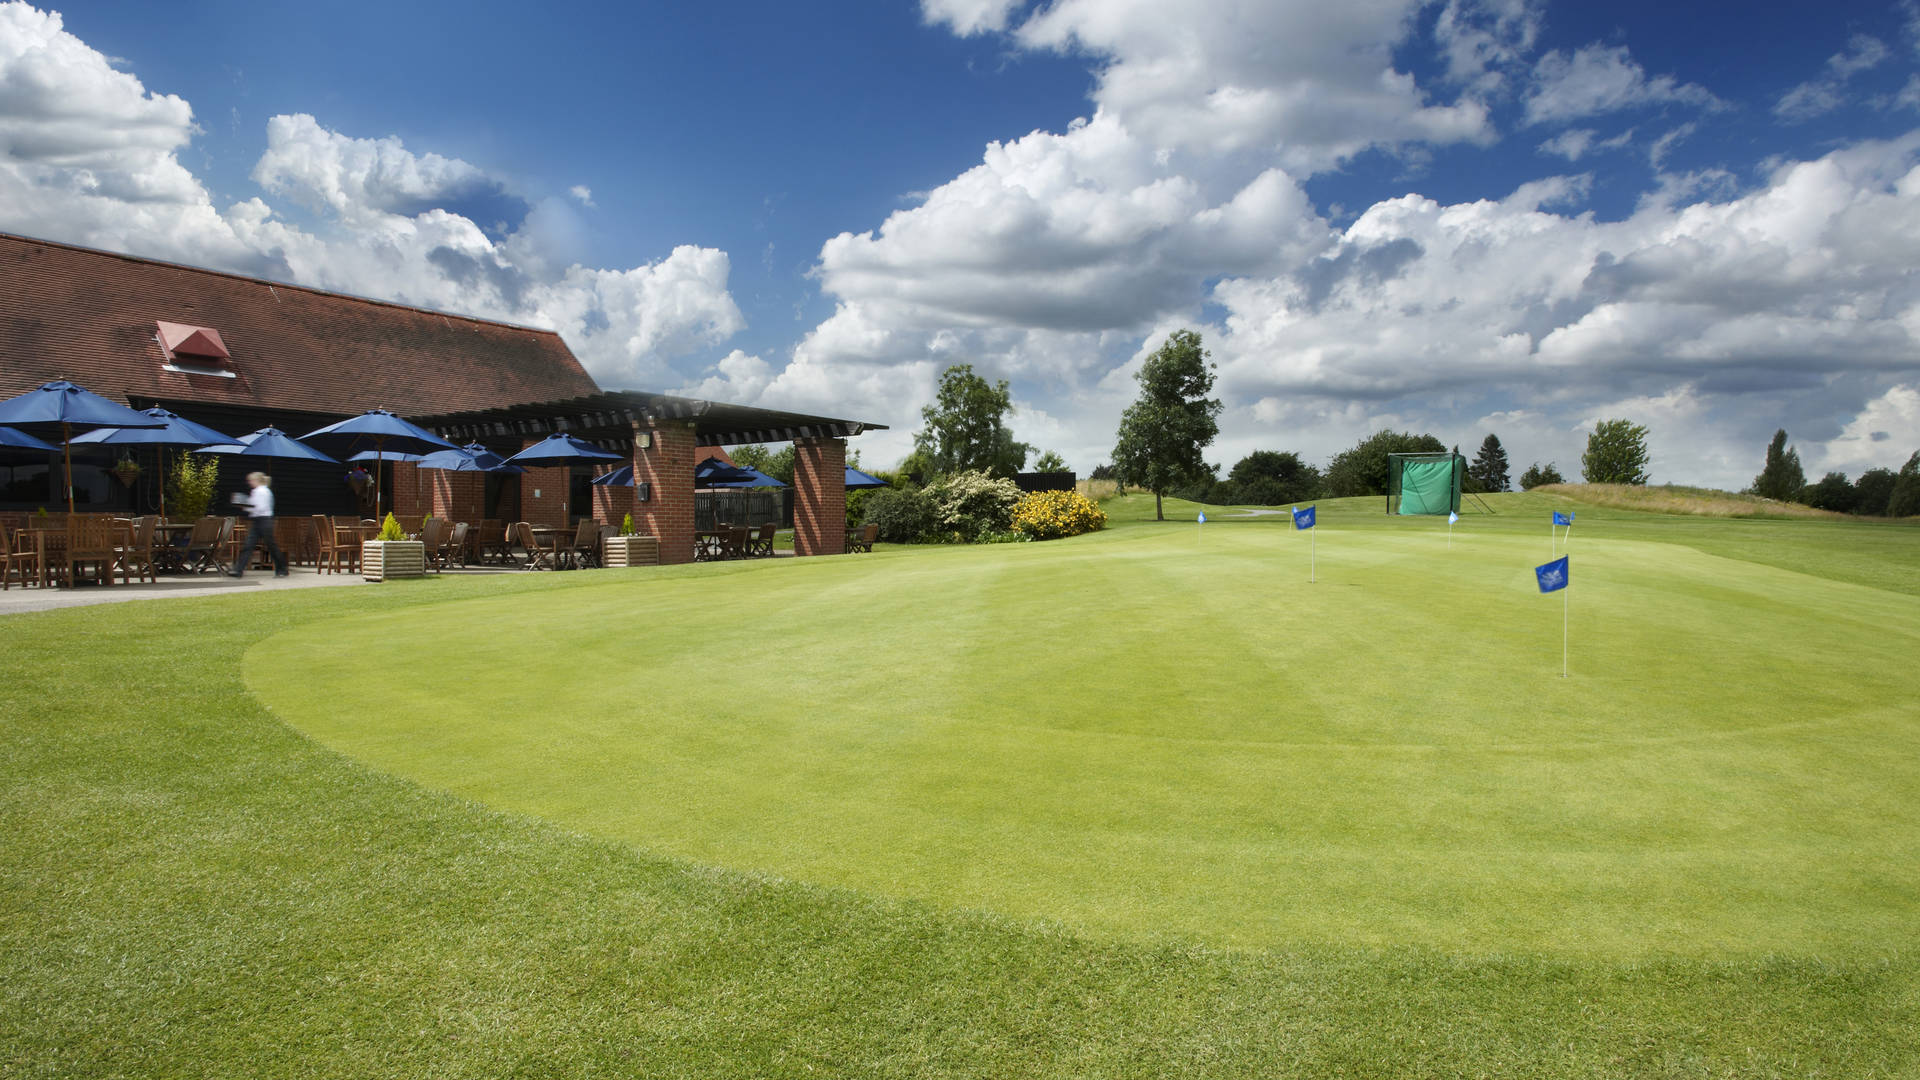 Golf at The Warwickshire Image